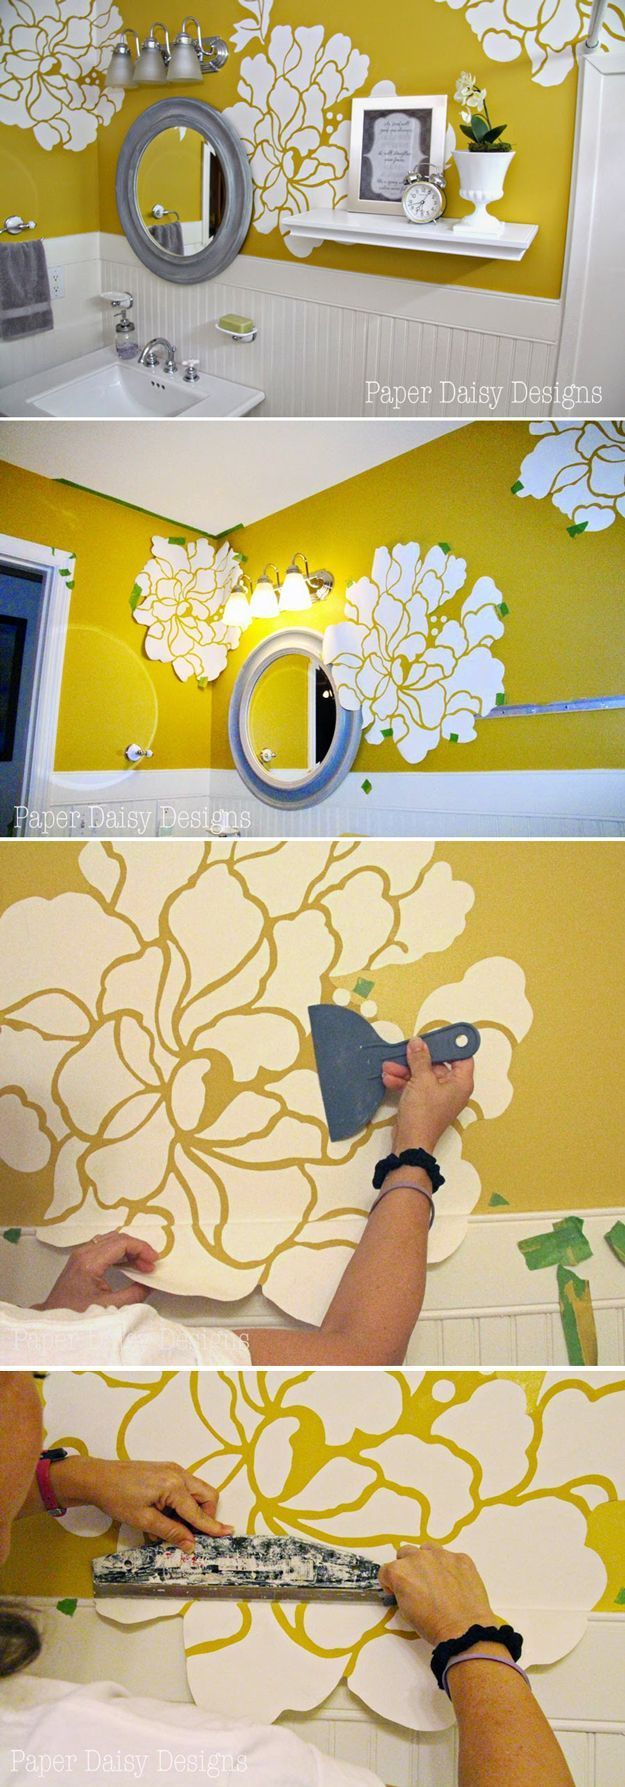 7719 best Wall Paper & Wall Art images on Pinterest | Home ideas ...